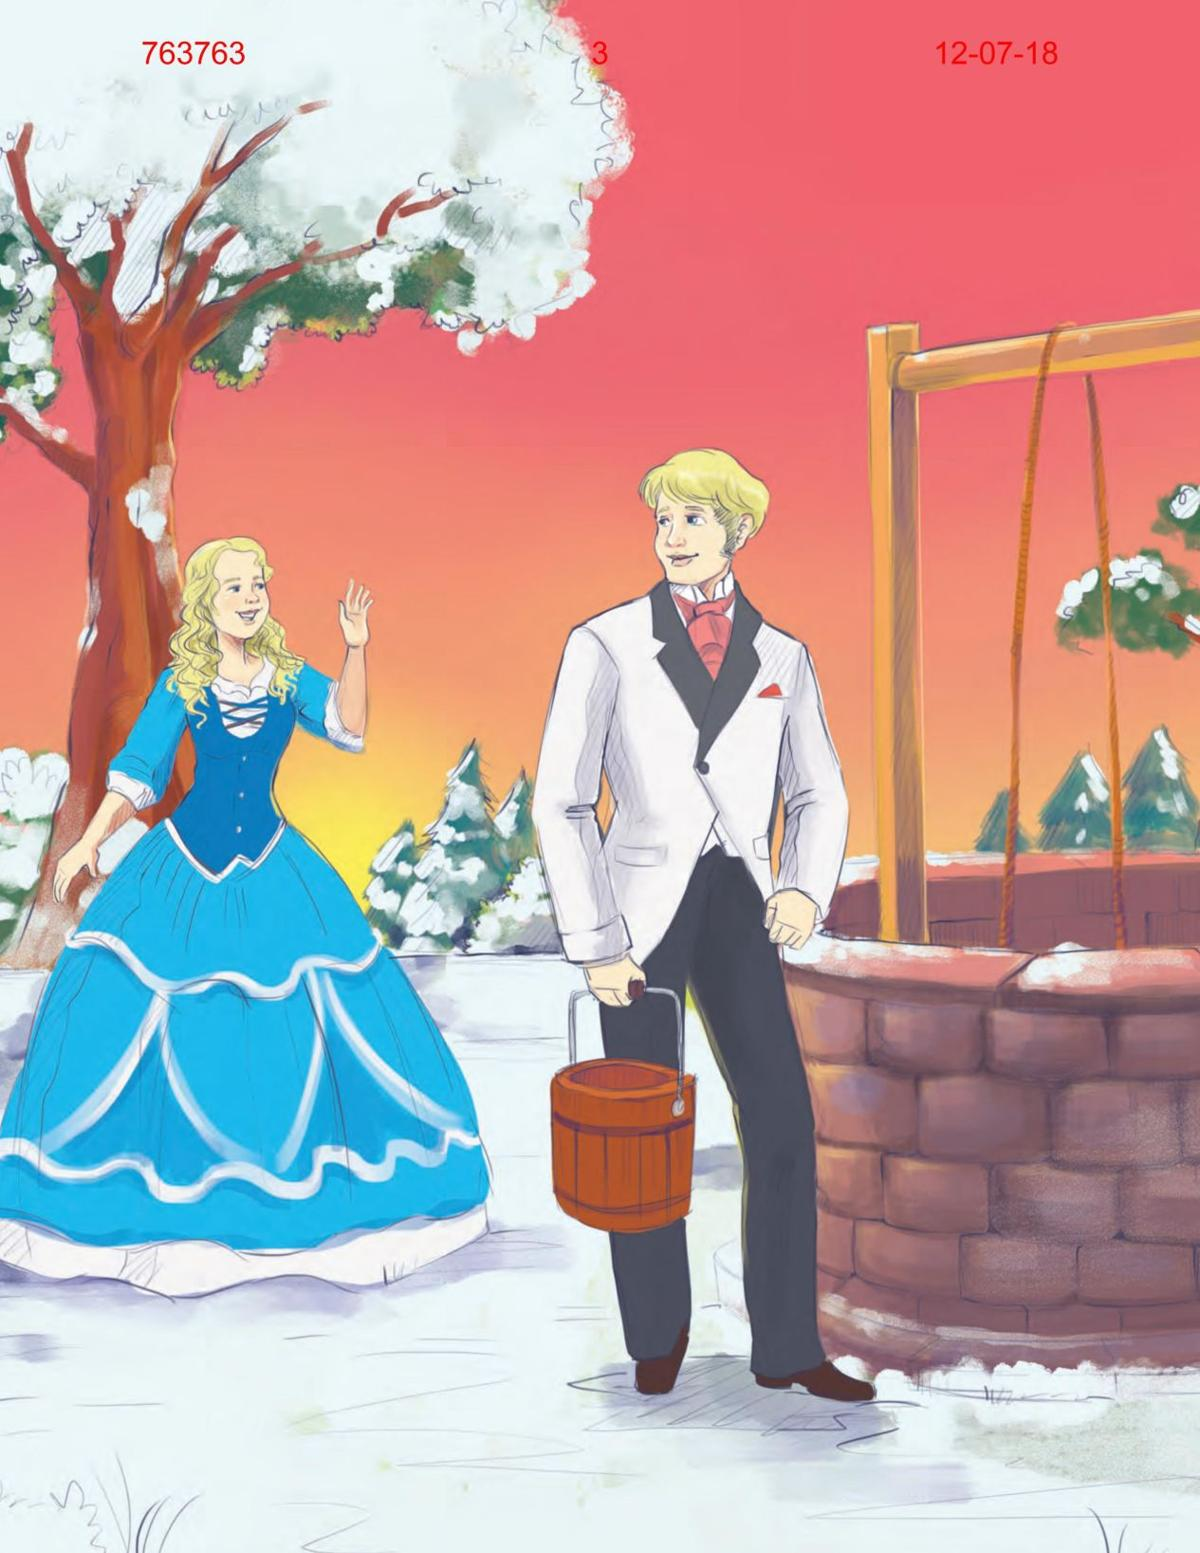 Local author puts new spin on old tale in new children's book